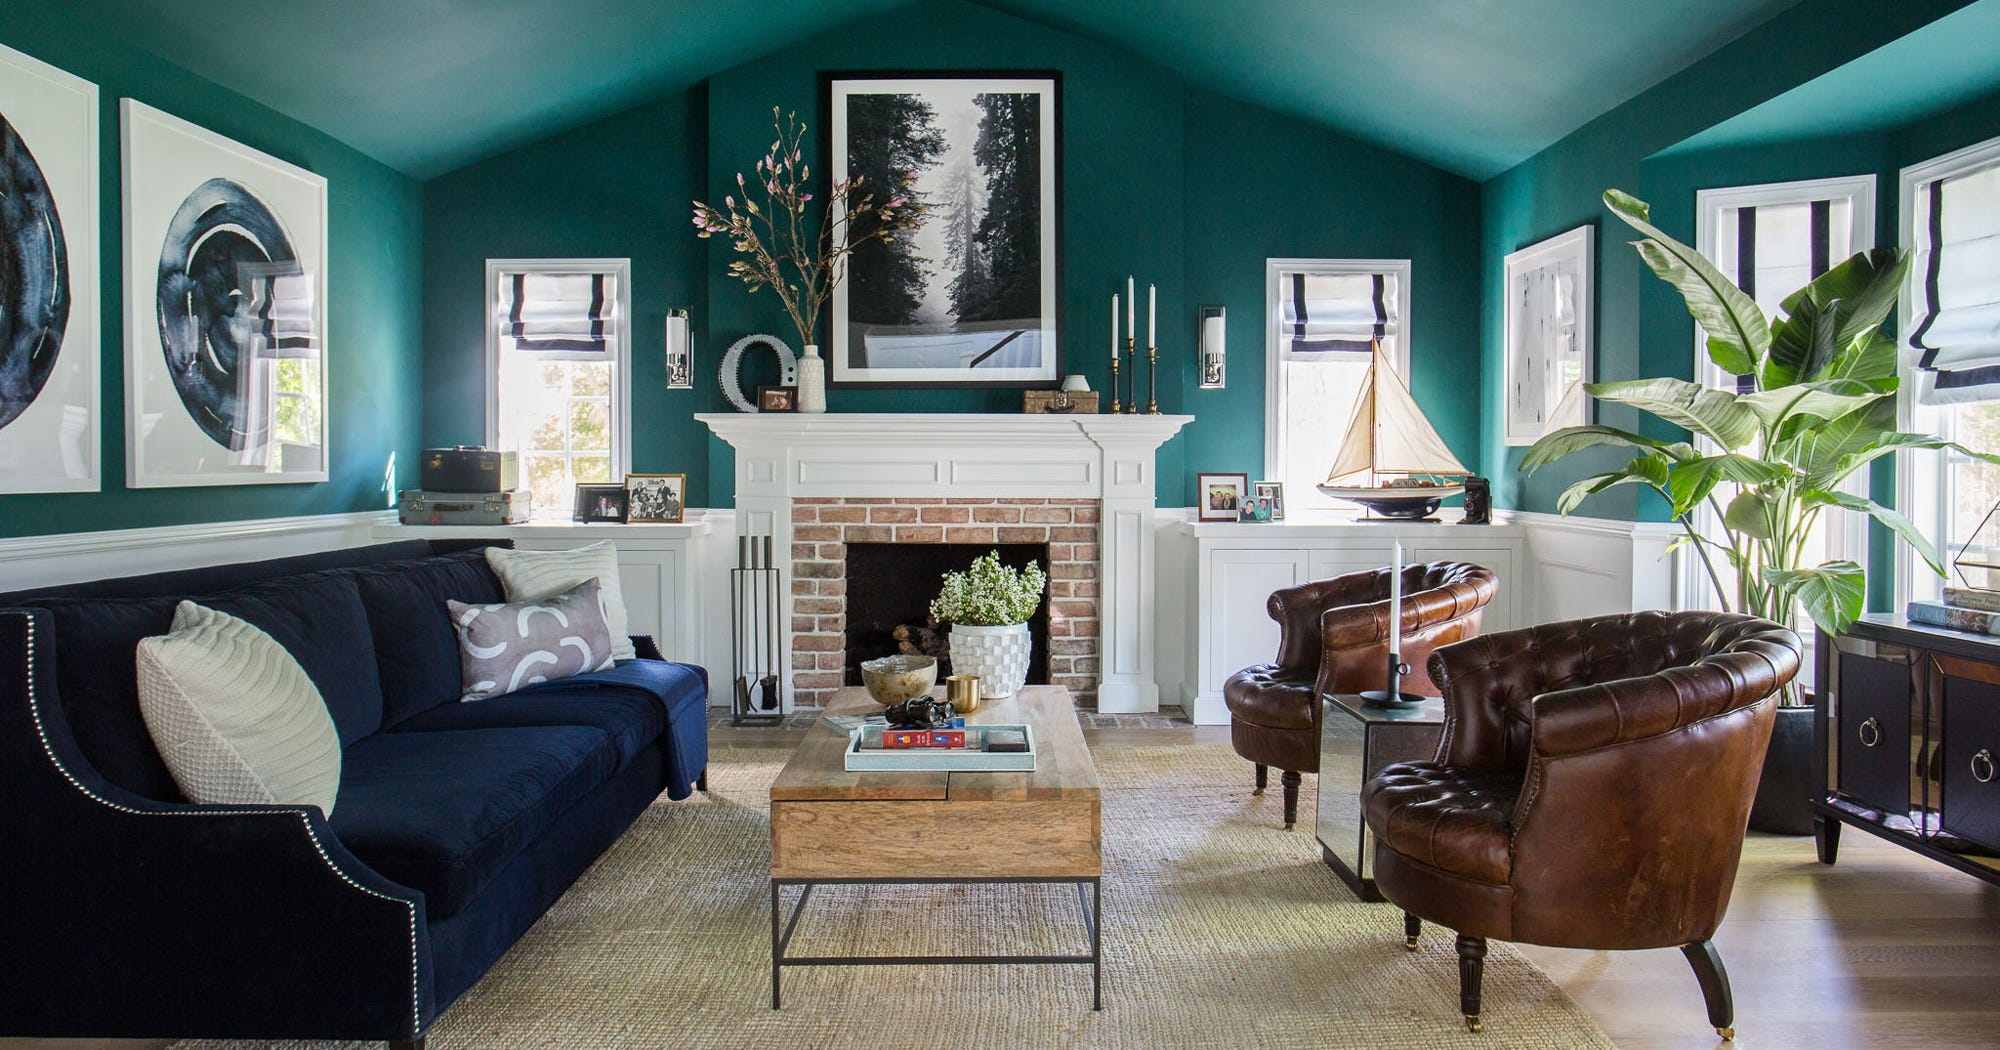 8 Tips To Make Painting A Room (Somewhat) Easier